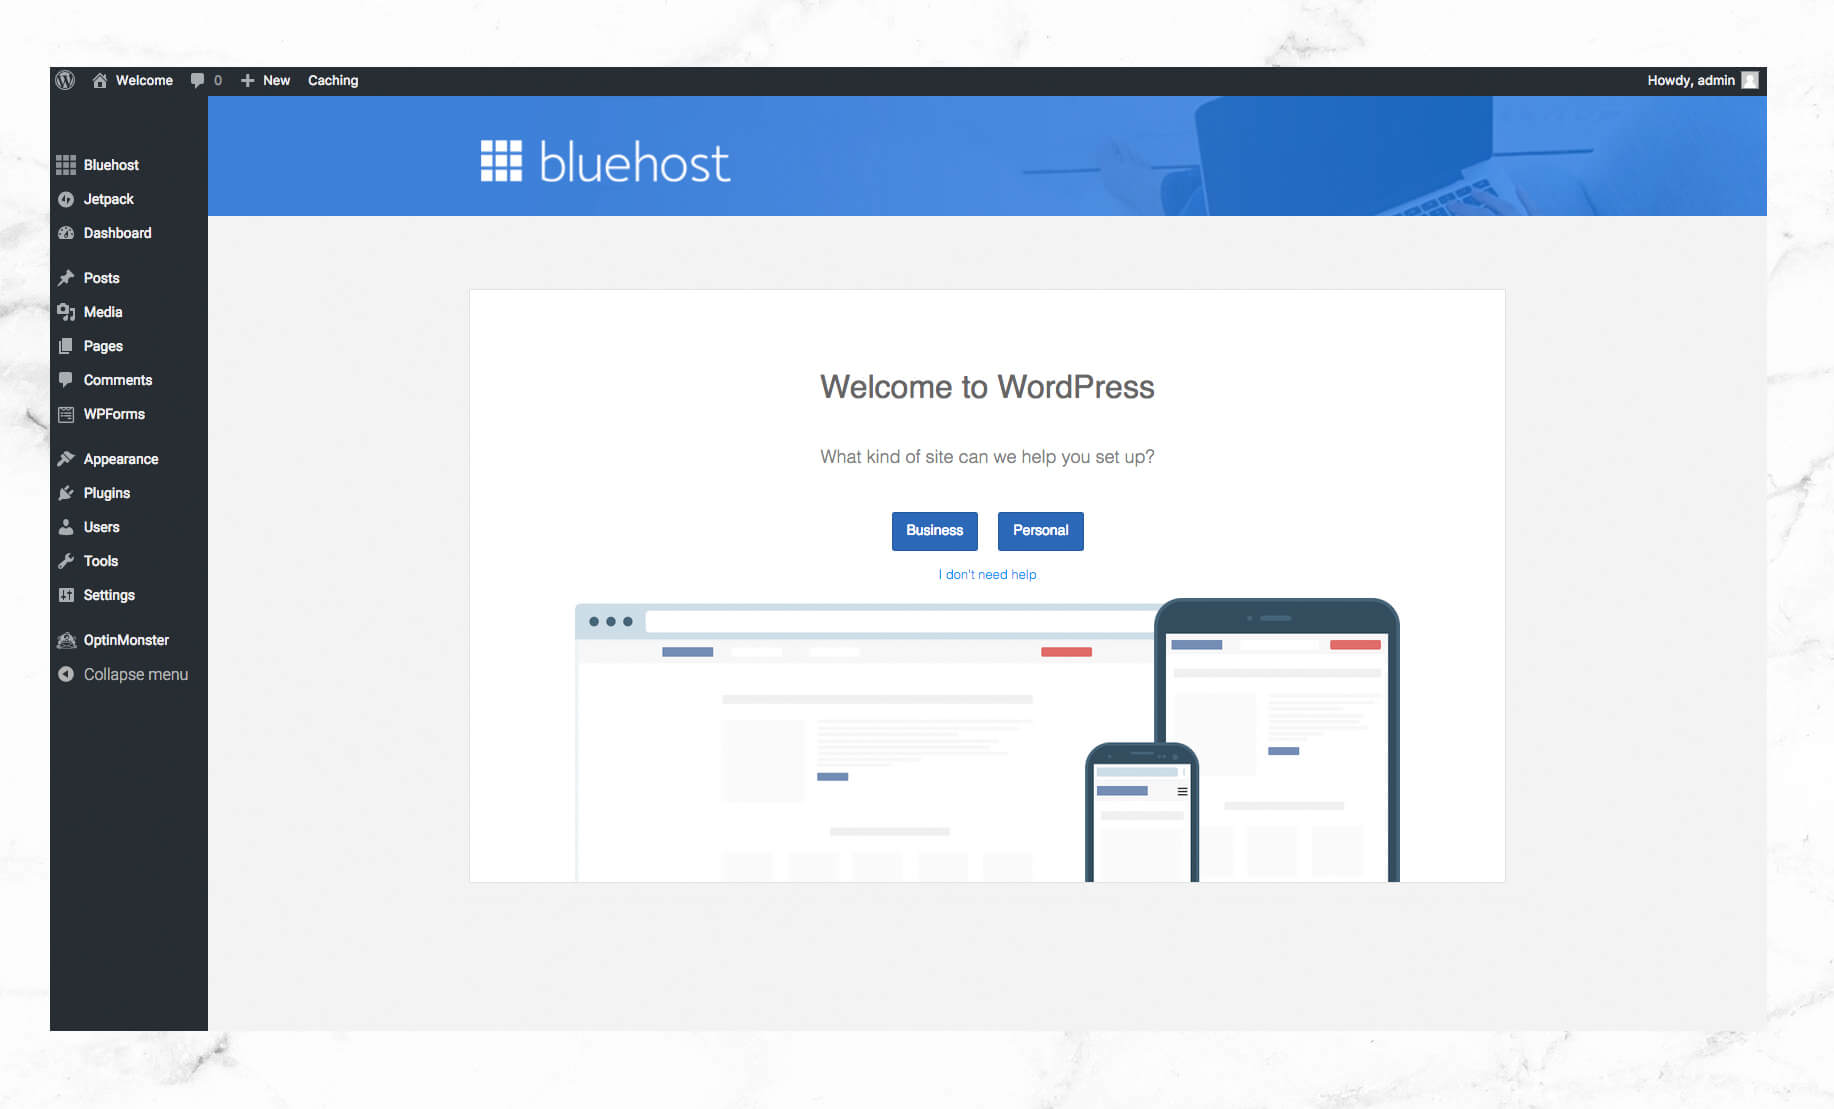 On the next screen you may choose between a business or personal website in  order to receive help and support from WordPress. If you're not interested,  ...